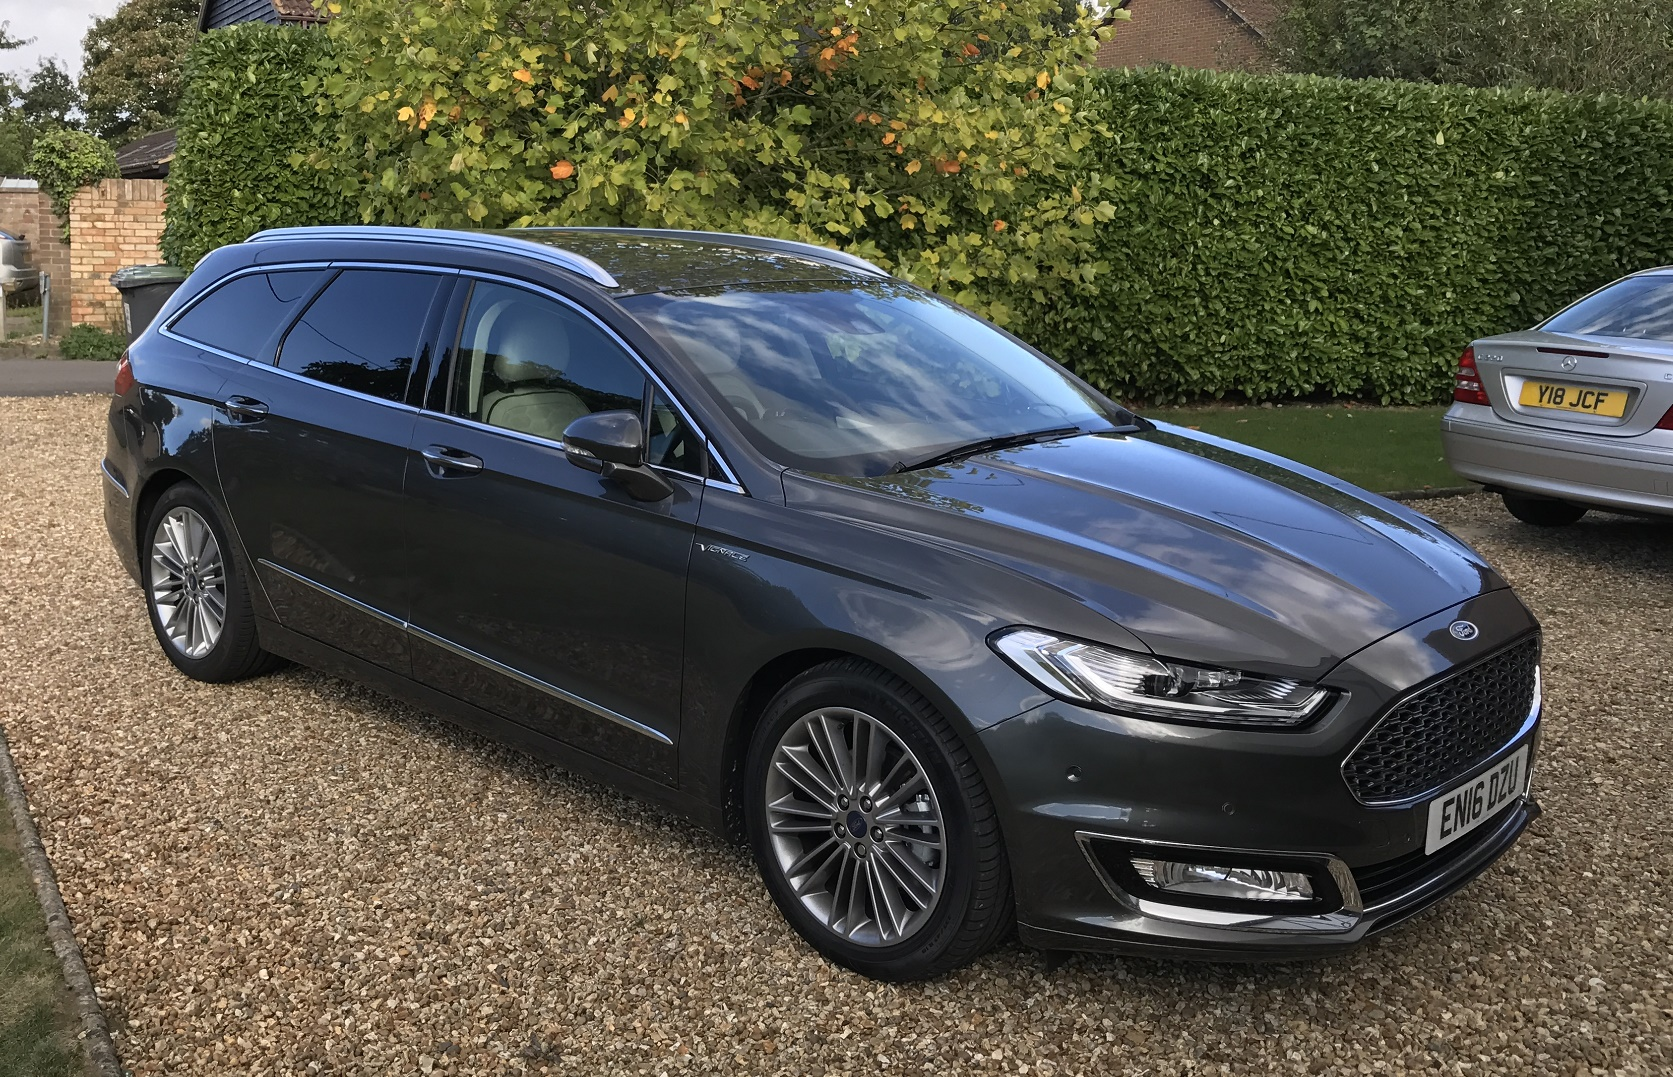 Ford Mondeo Vignale 2 0 Tdci Estate Review Business Car